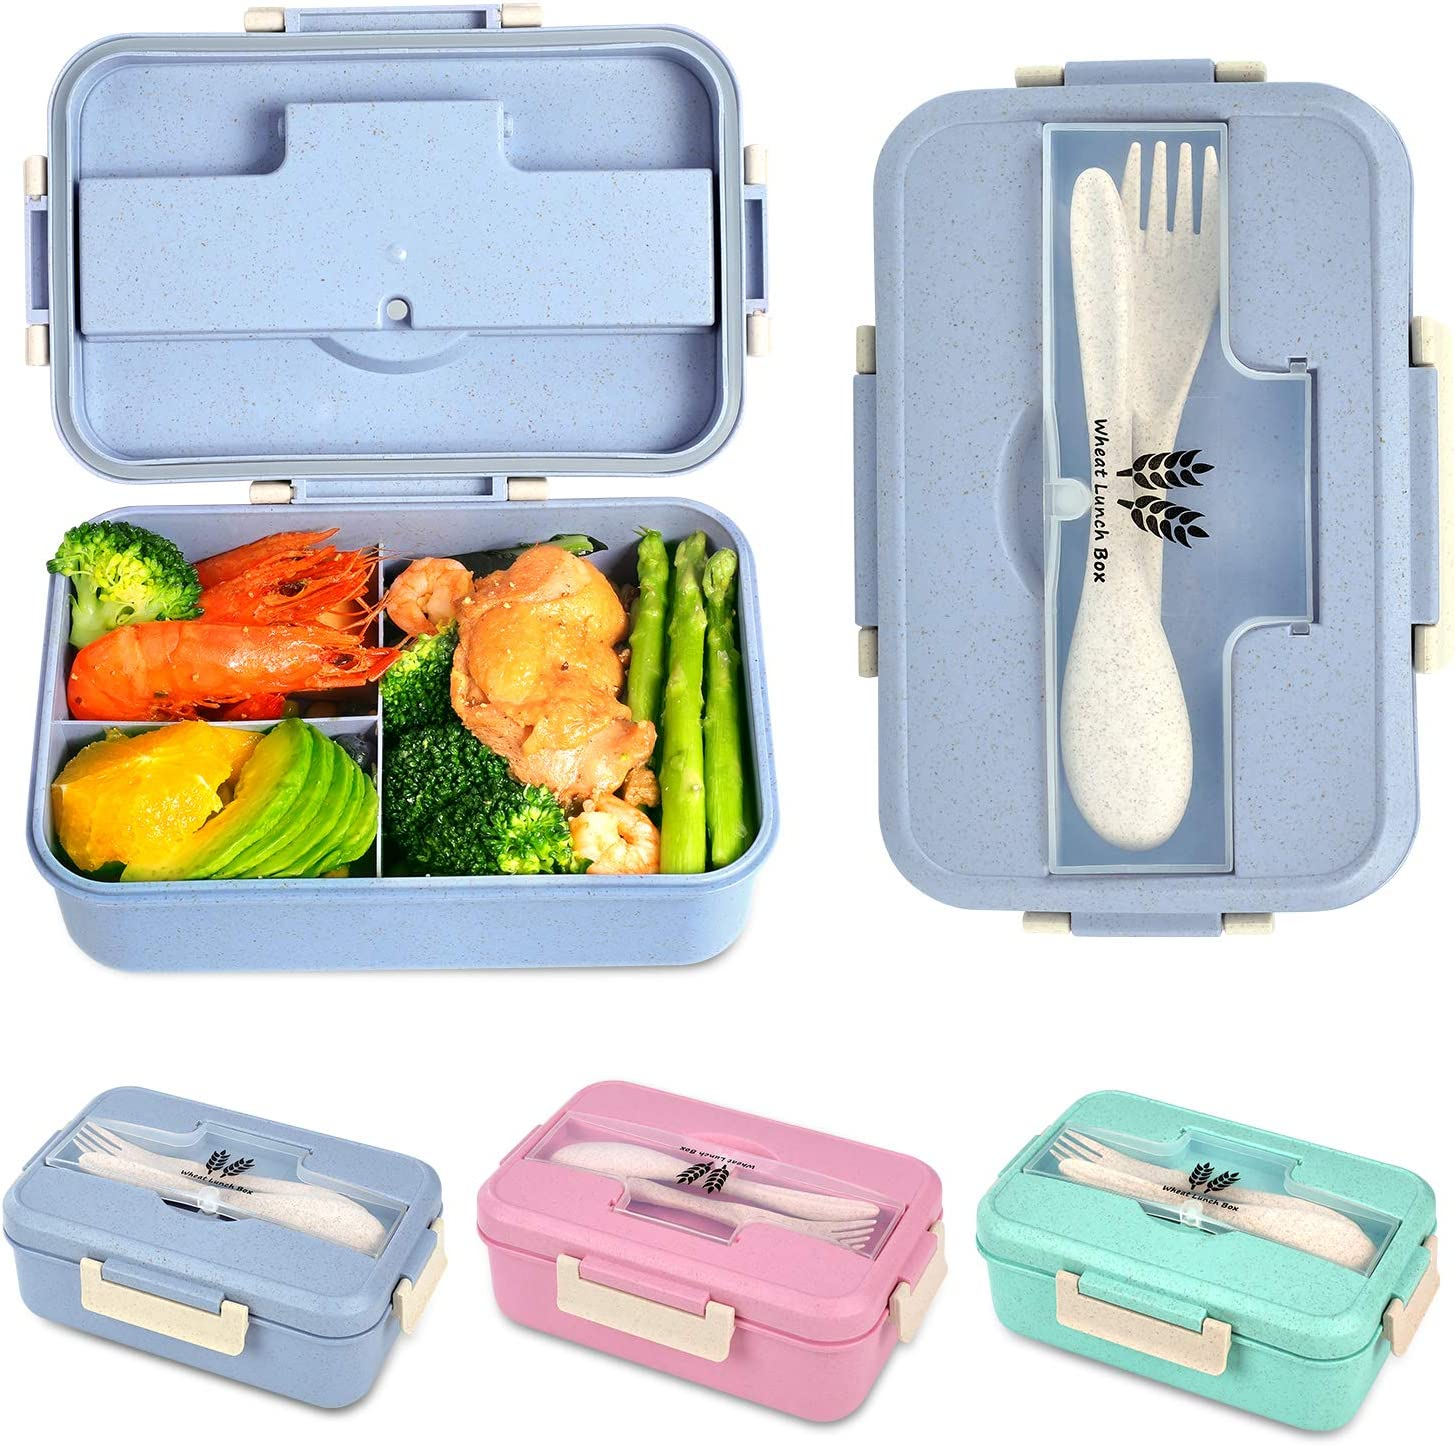 Bento Box For Kids and Adults With 3 Compartment,Wheat Fiber Leak Proof Lunch Box Food Containers With Spoon & Fork(1200ML) (Blue)